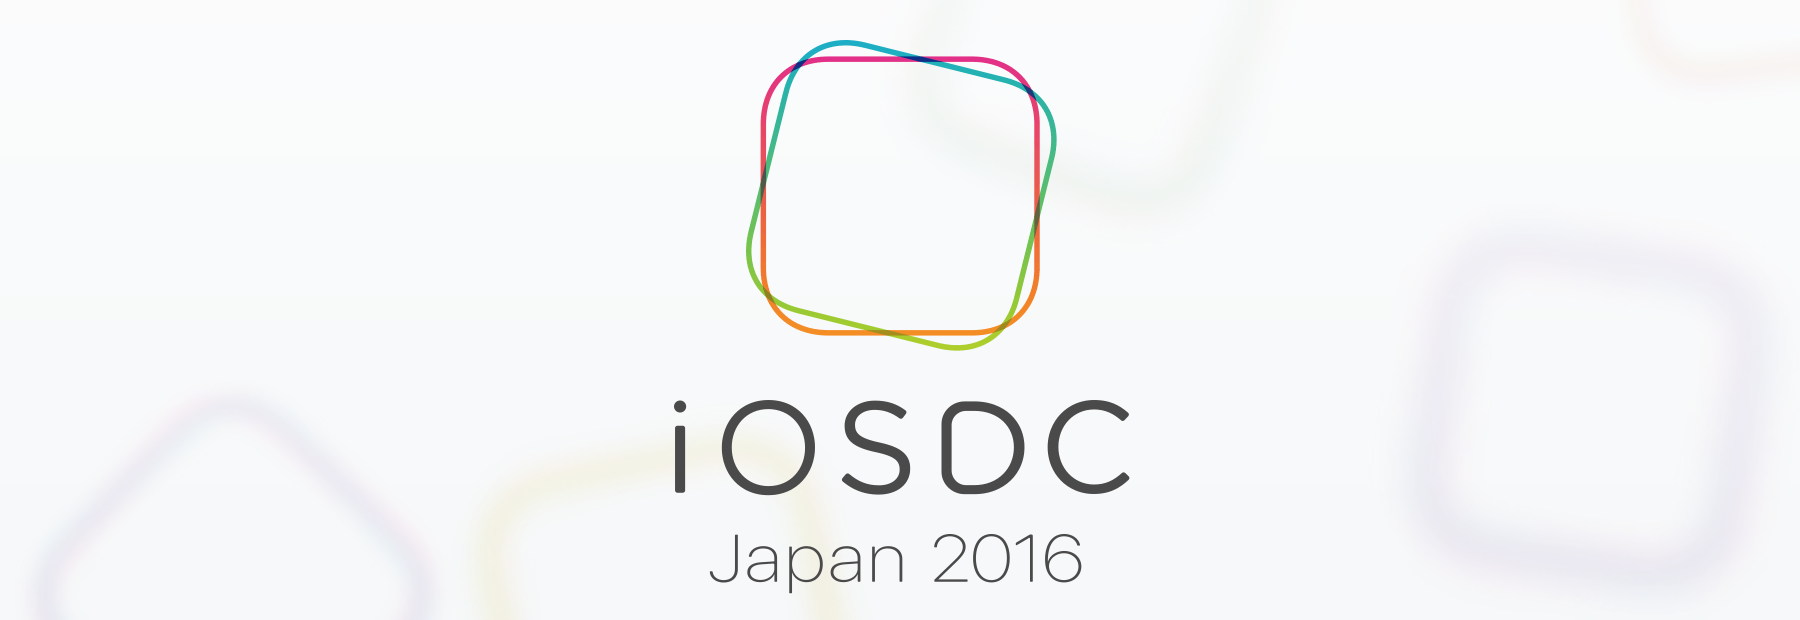 iosdc1.png